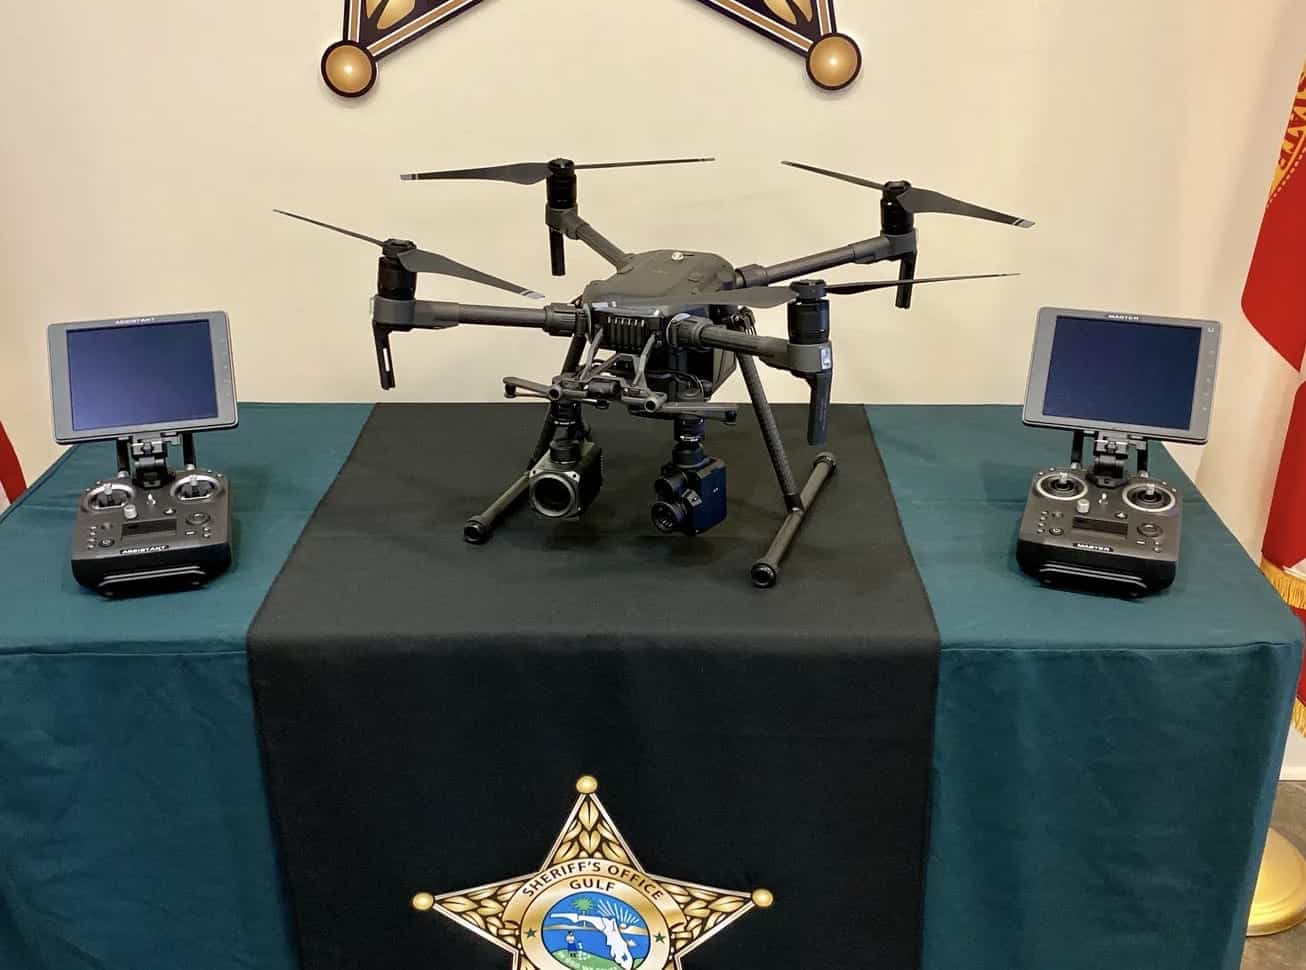 Sheriff's Office unveils latest drone technology